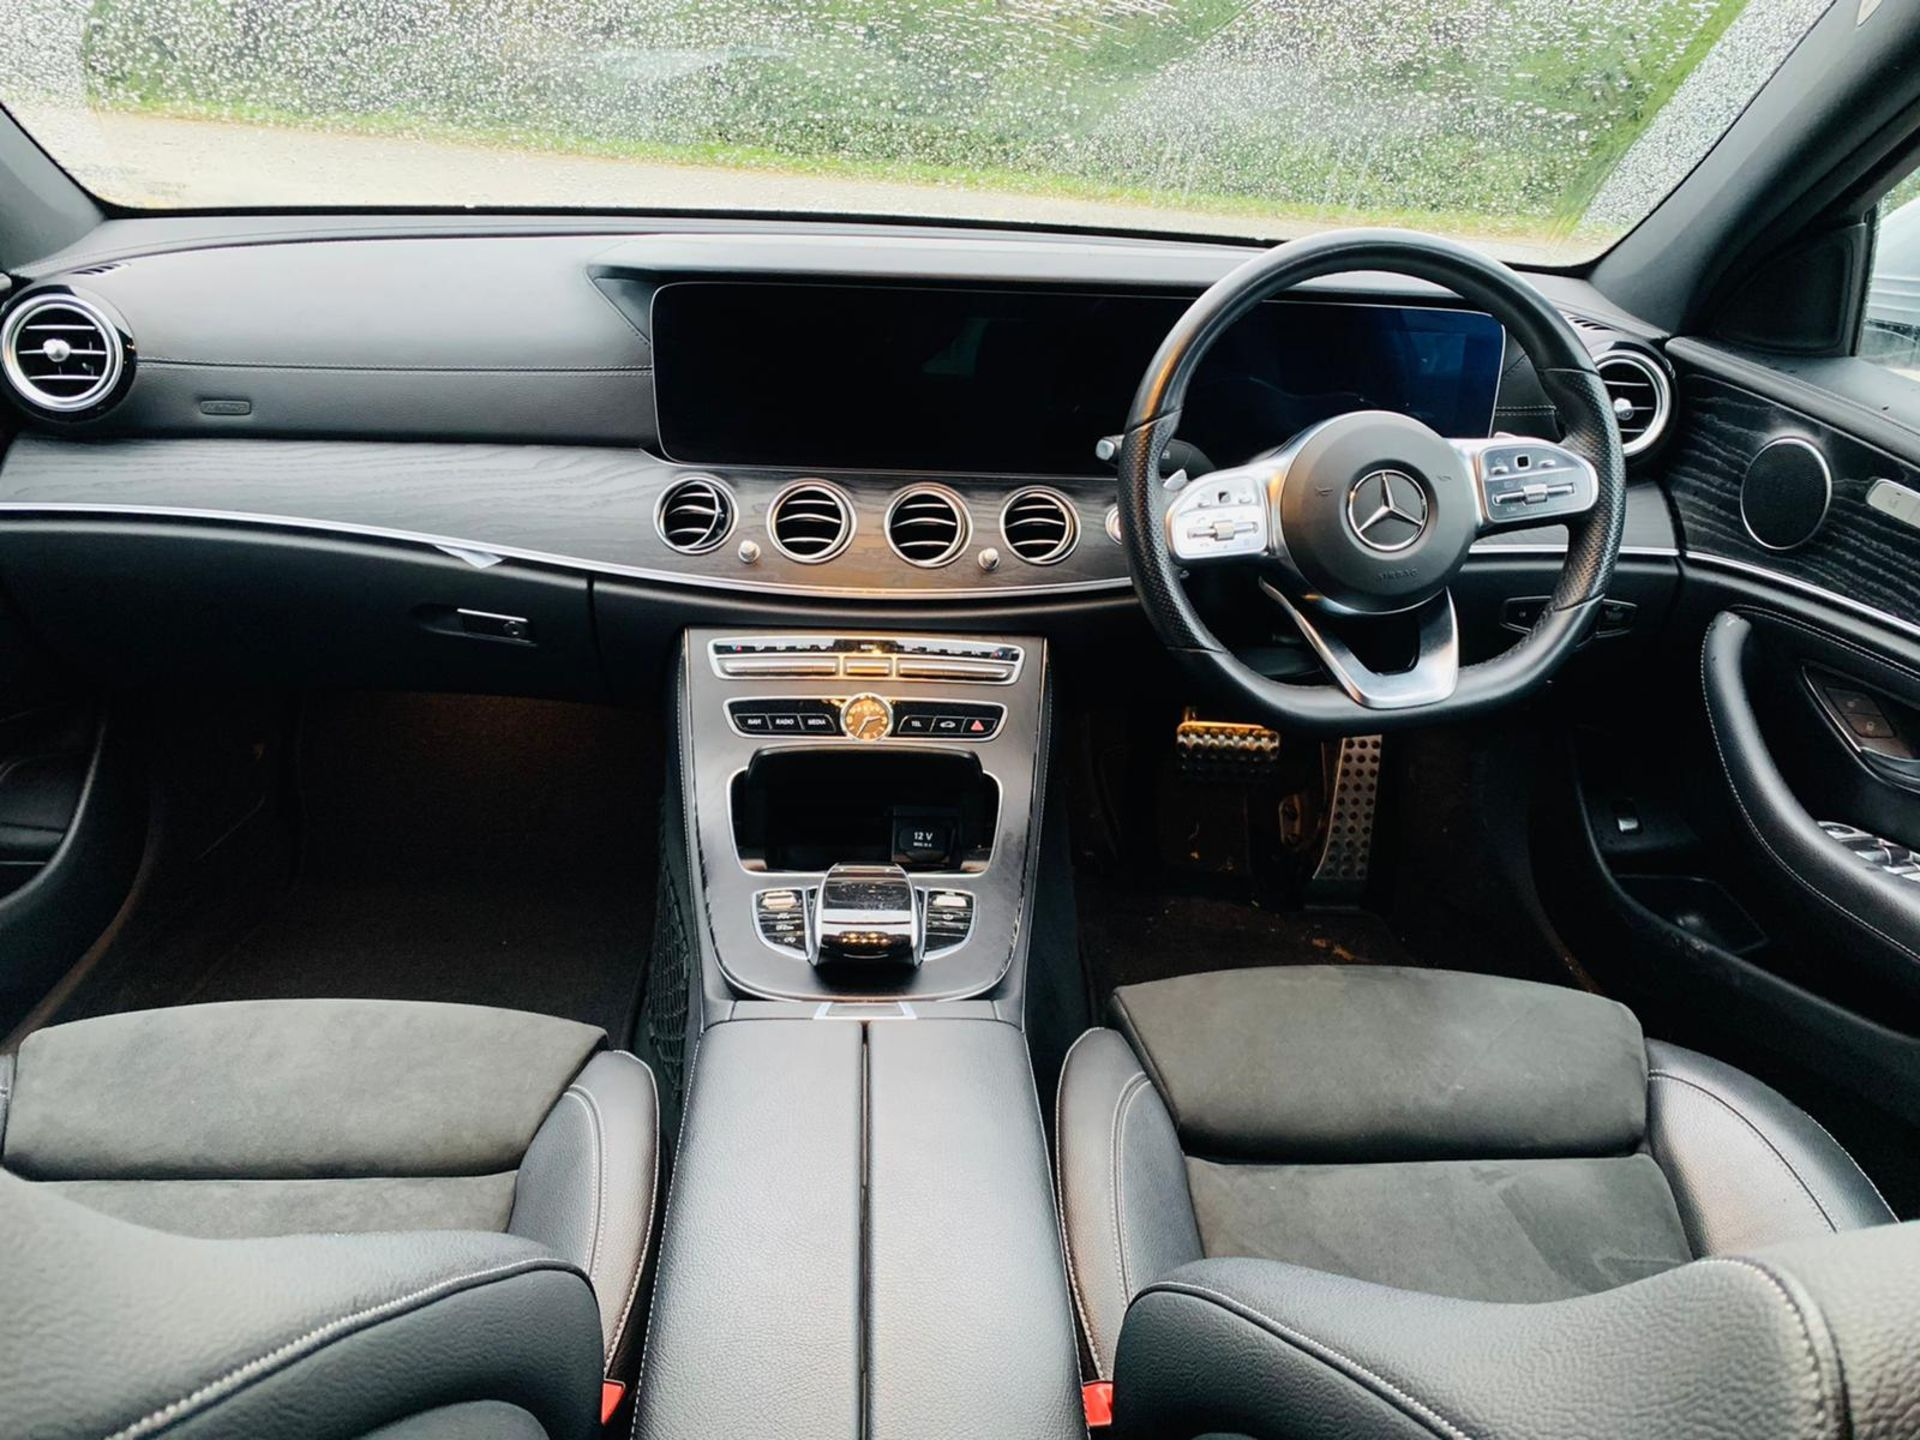 (Reserve Met)Mercedes E220d AMG Line Auto 9G Tronic - 2019 Reg - Reversing Cam - 1 Owner From New - Image 11 of 30